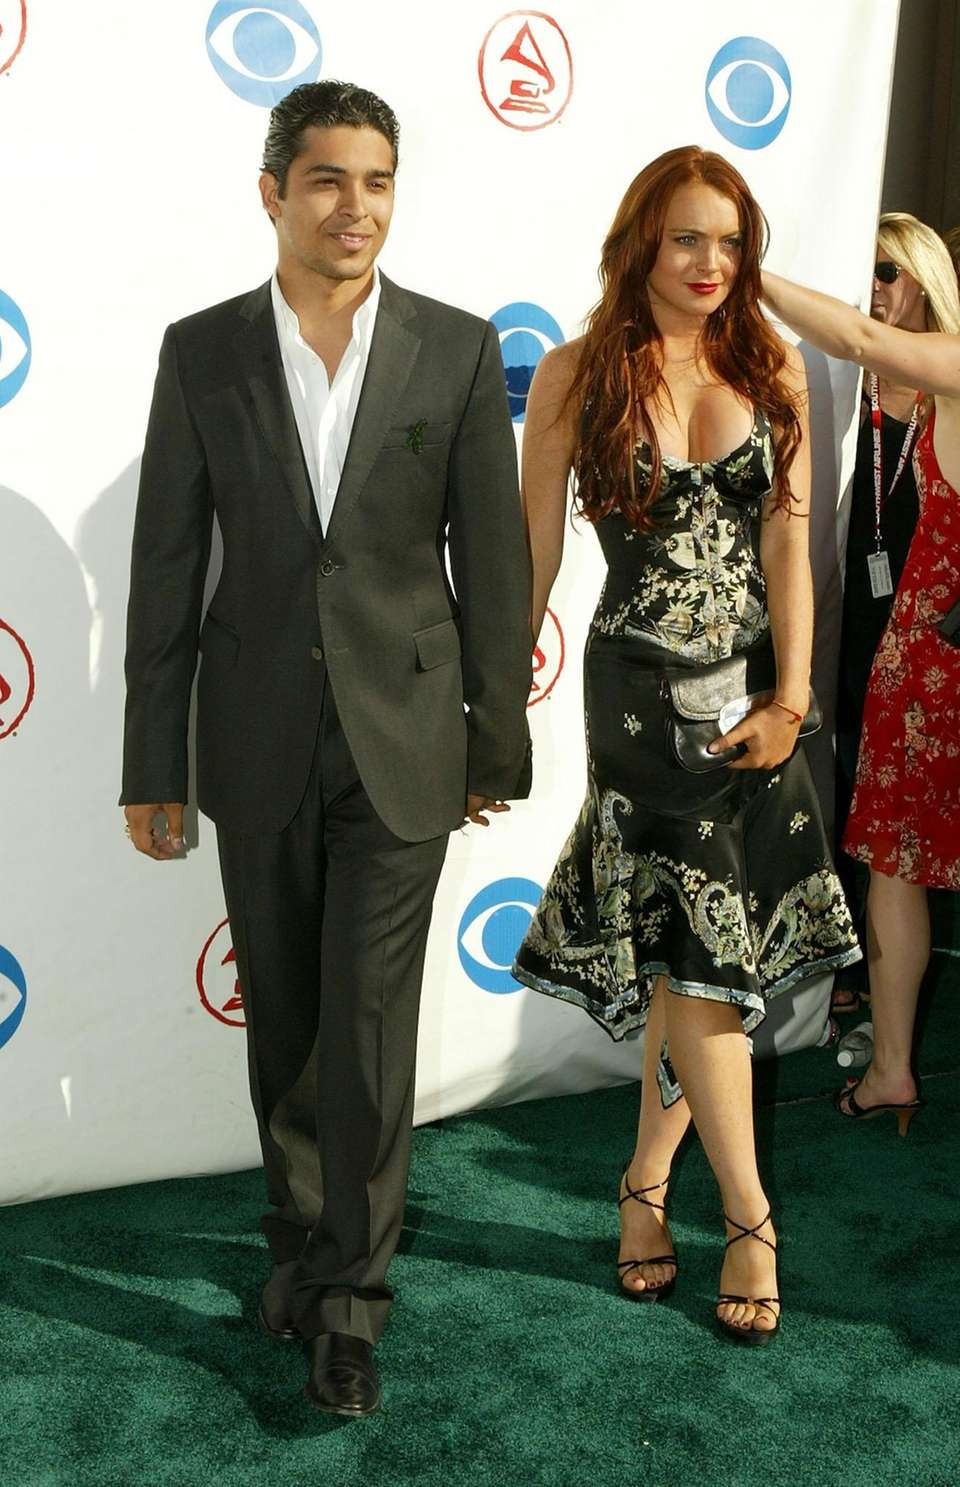 Lindsay Lohan arrives with Wilmer Valderrama for the